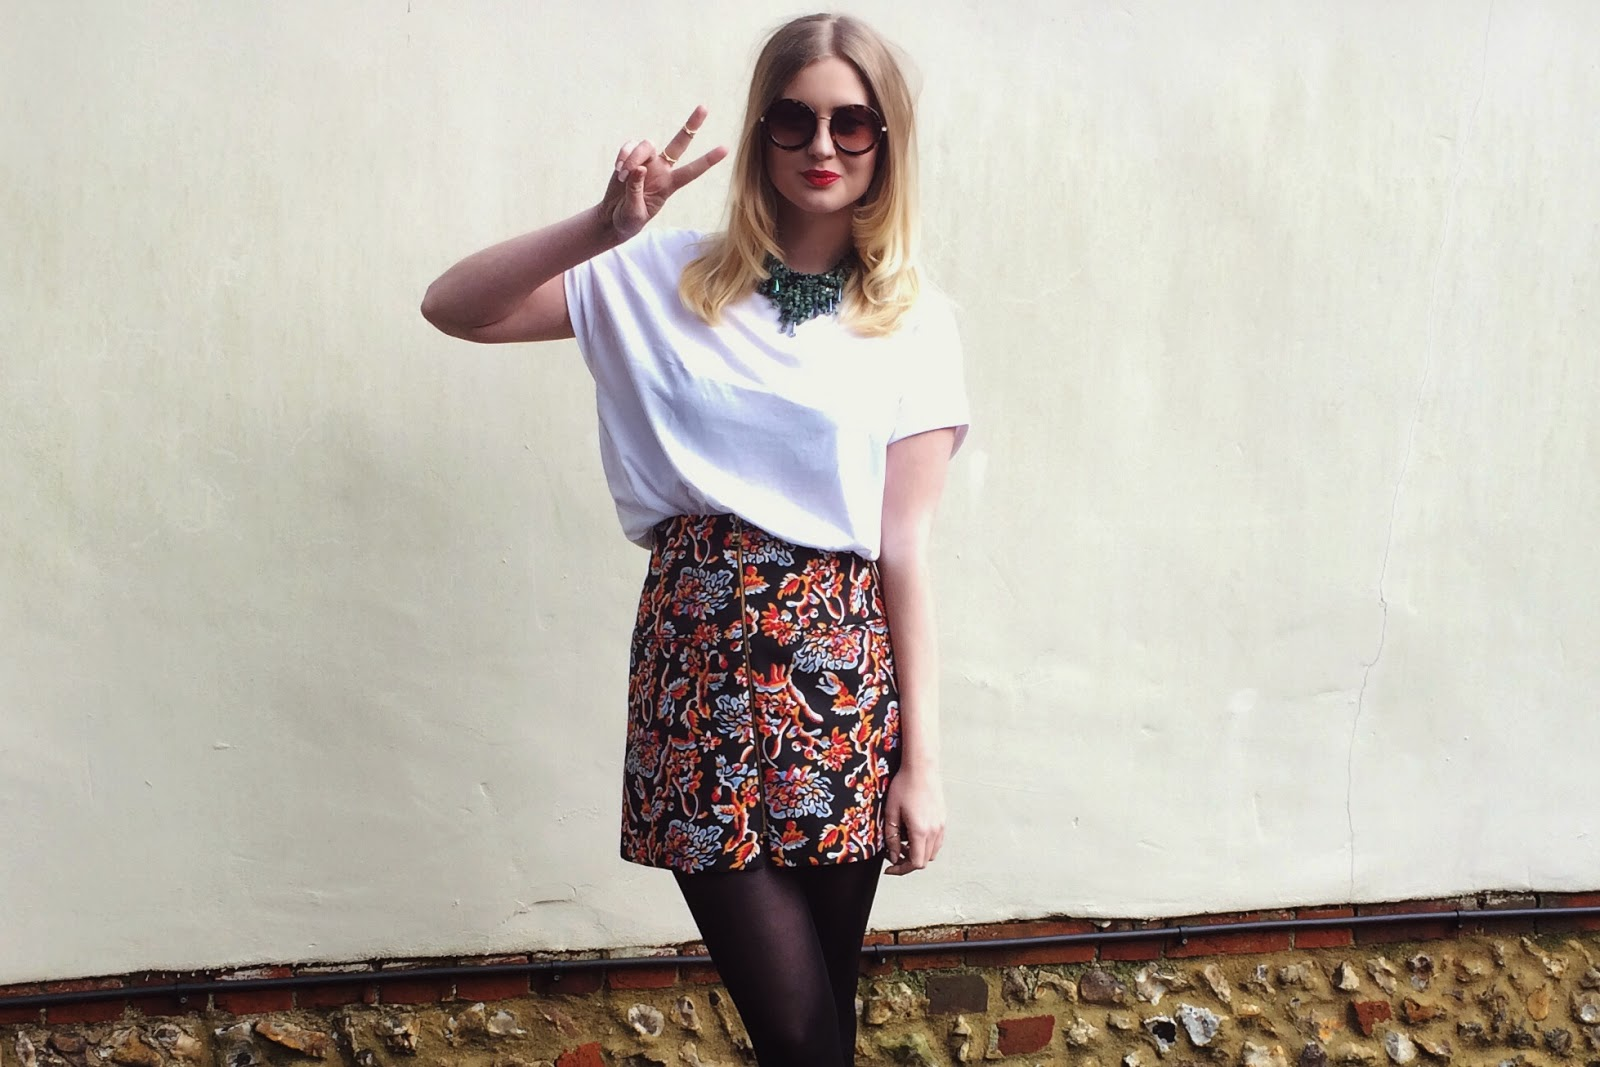 FashionFake, fashion bloggers, UK fashion blog, spring 2015 trends, 70s fashion trend